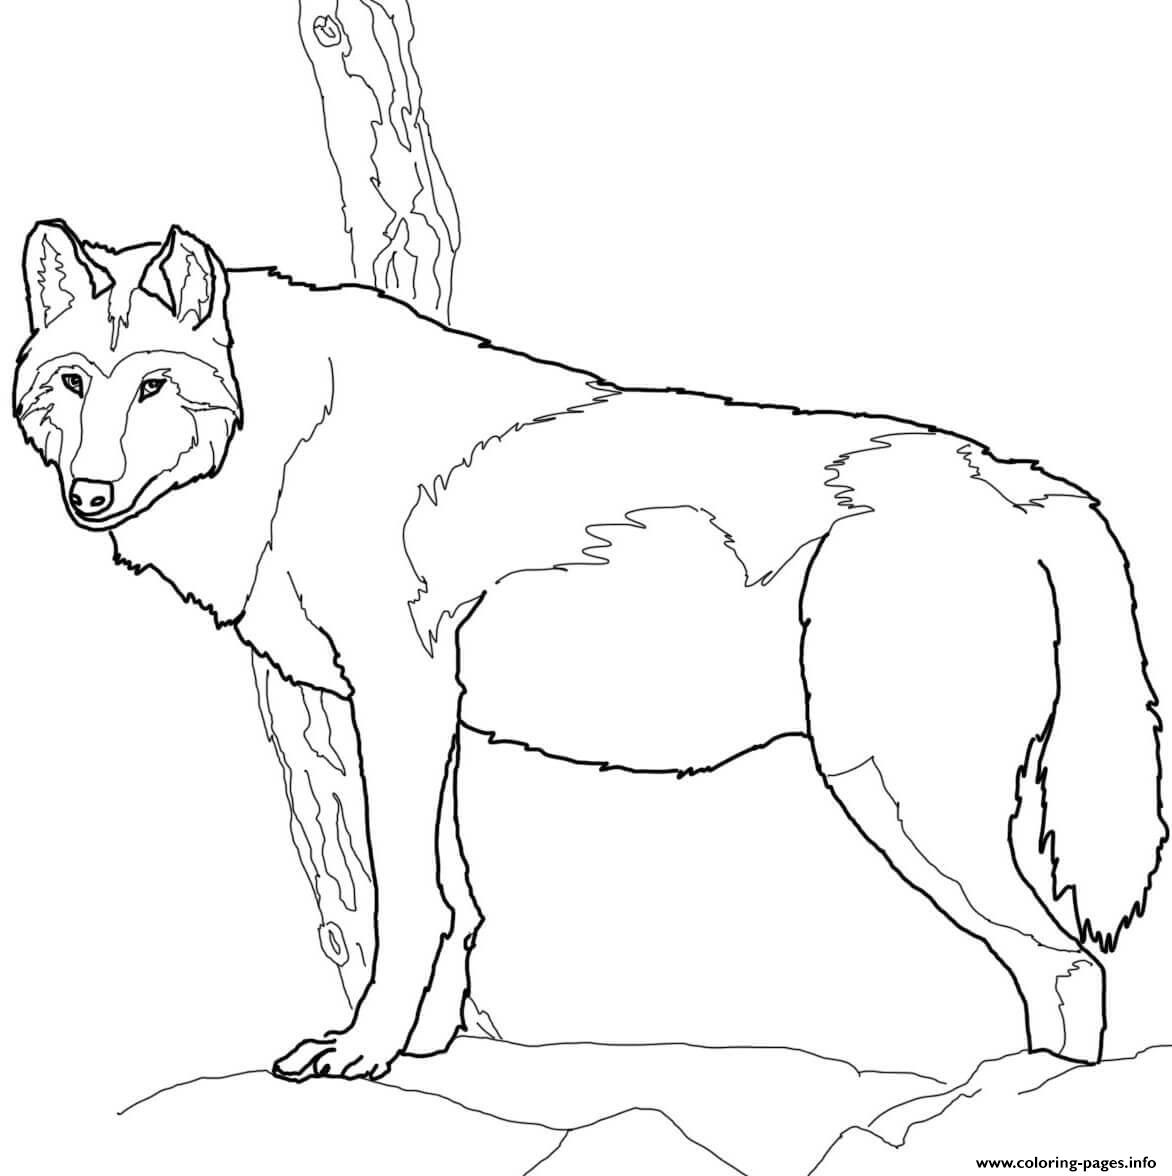 Wolf coloring pages printable - Wolf Coloring Pages Printable 52